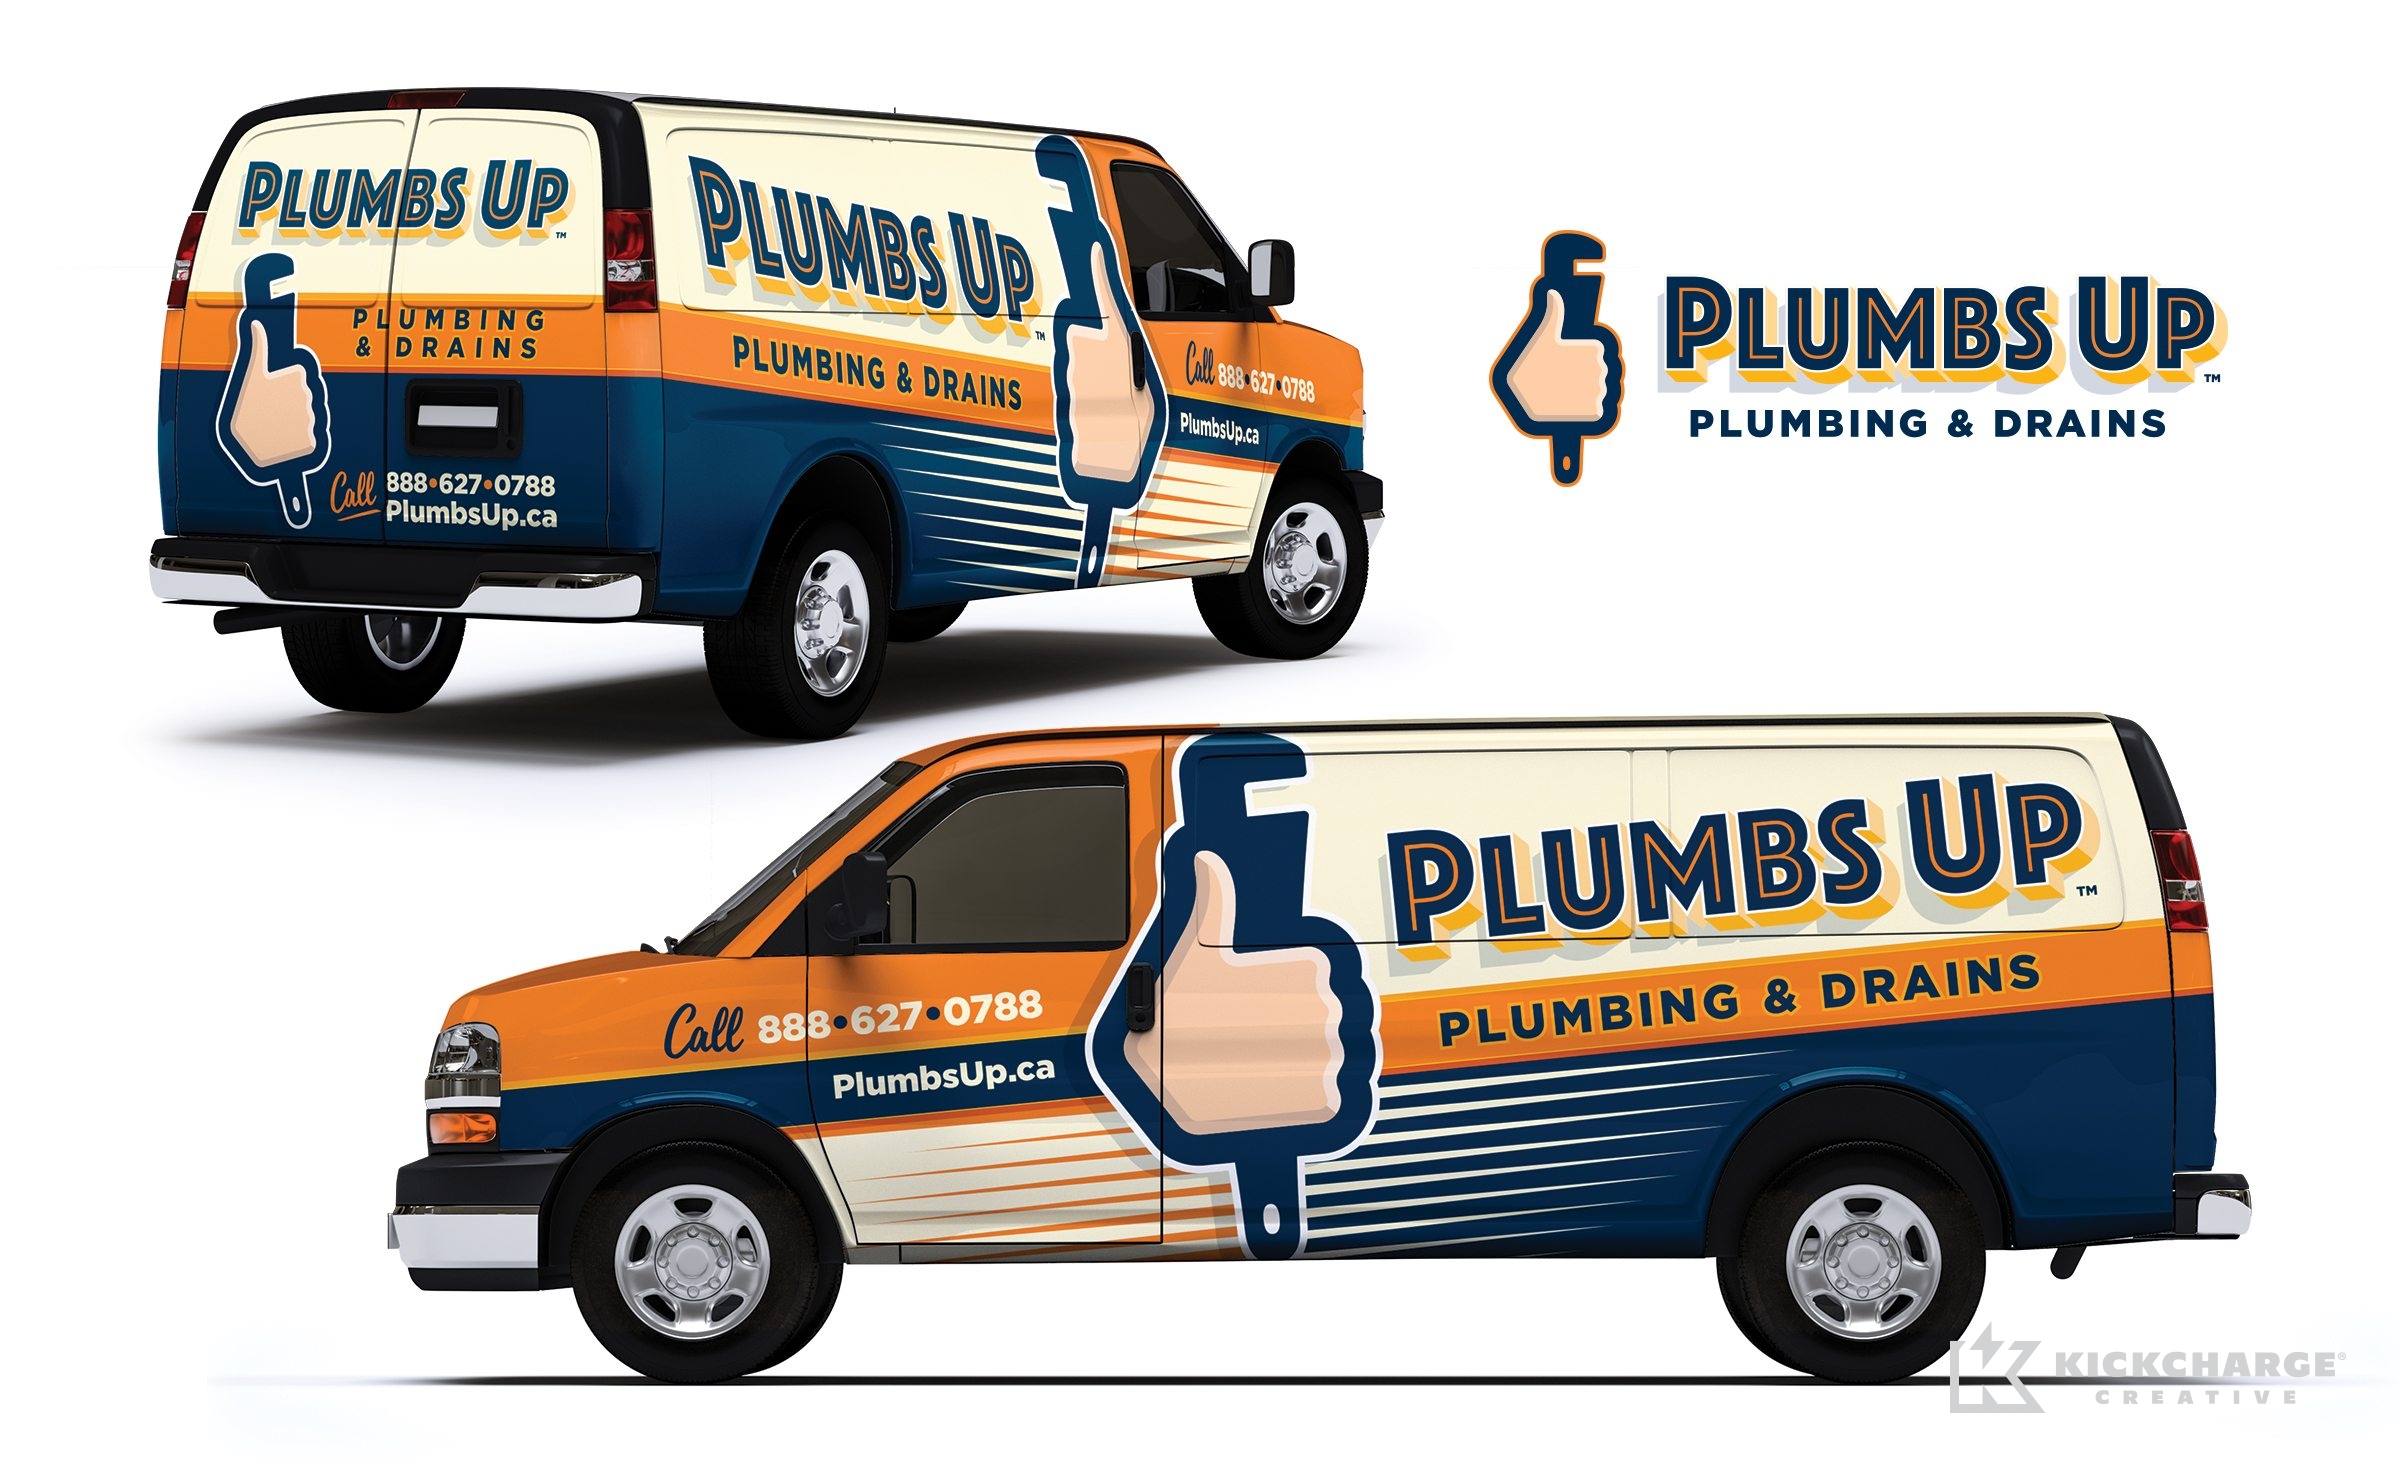 plumbing truck wrap for Plumbs Up Plumbing & Drains